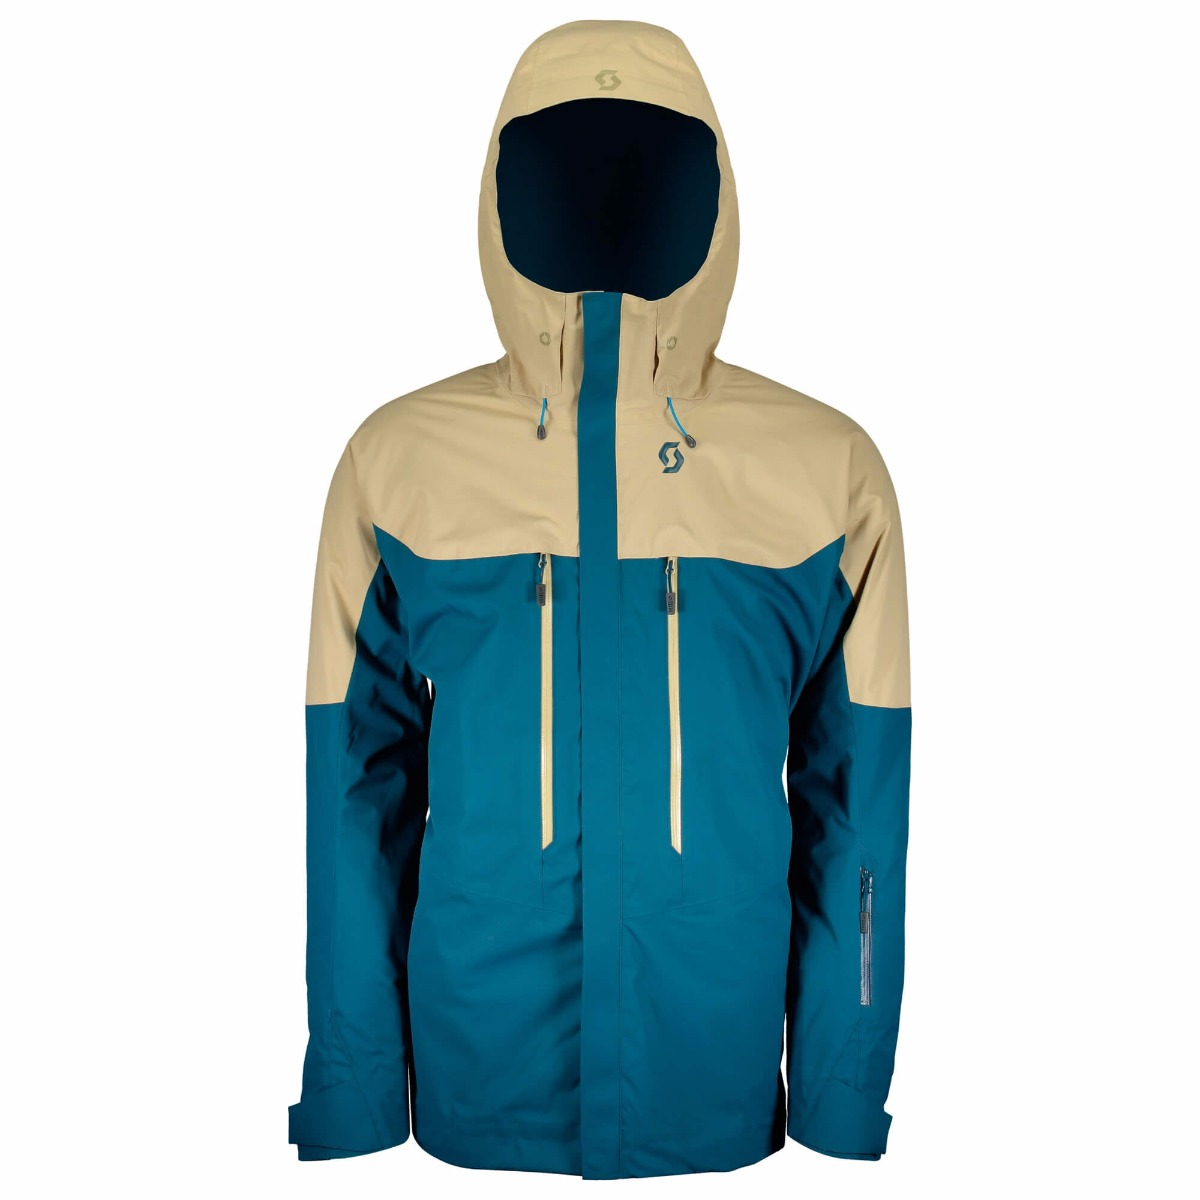 Scott Vertic 2L Insulated Jacket